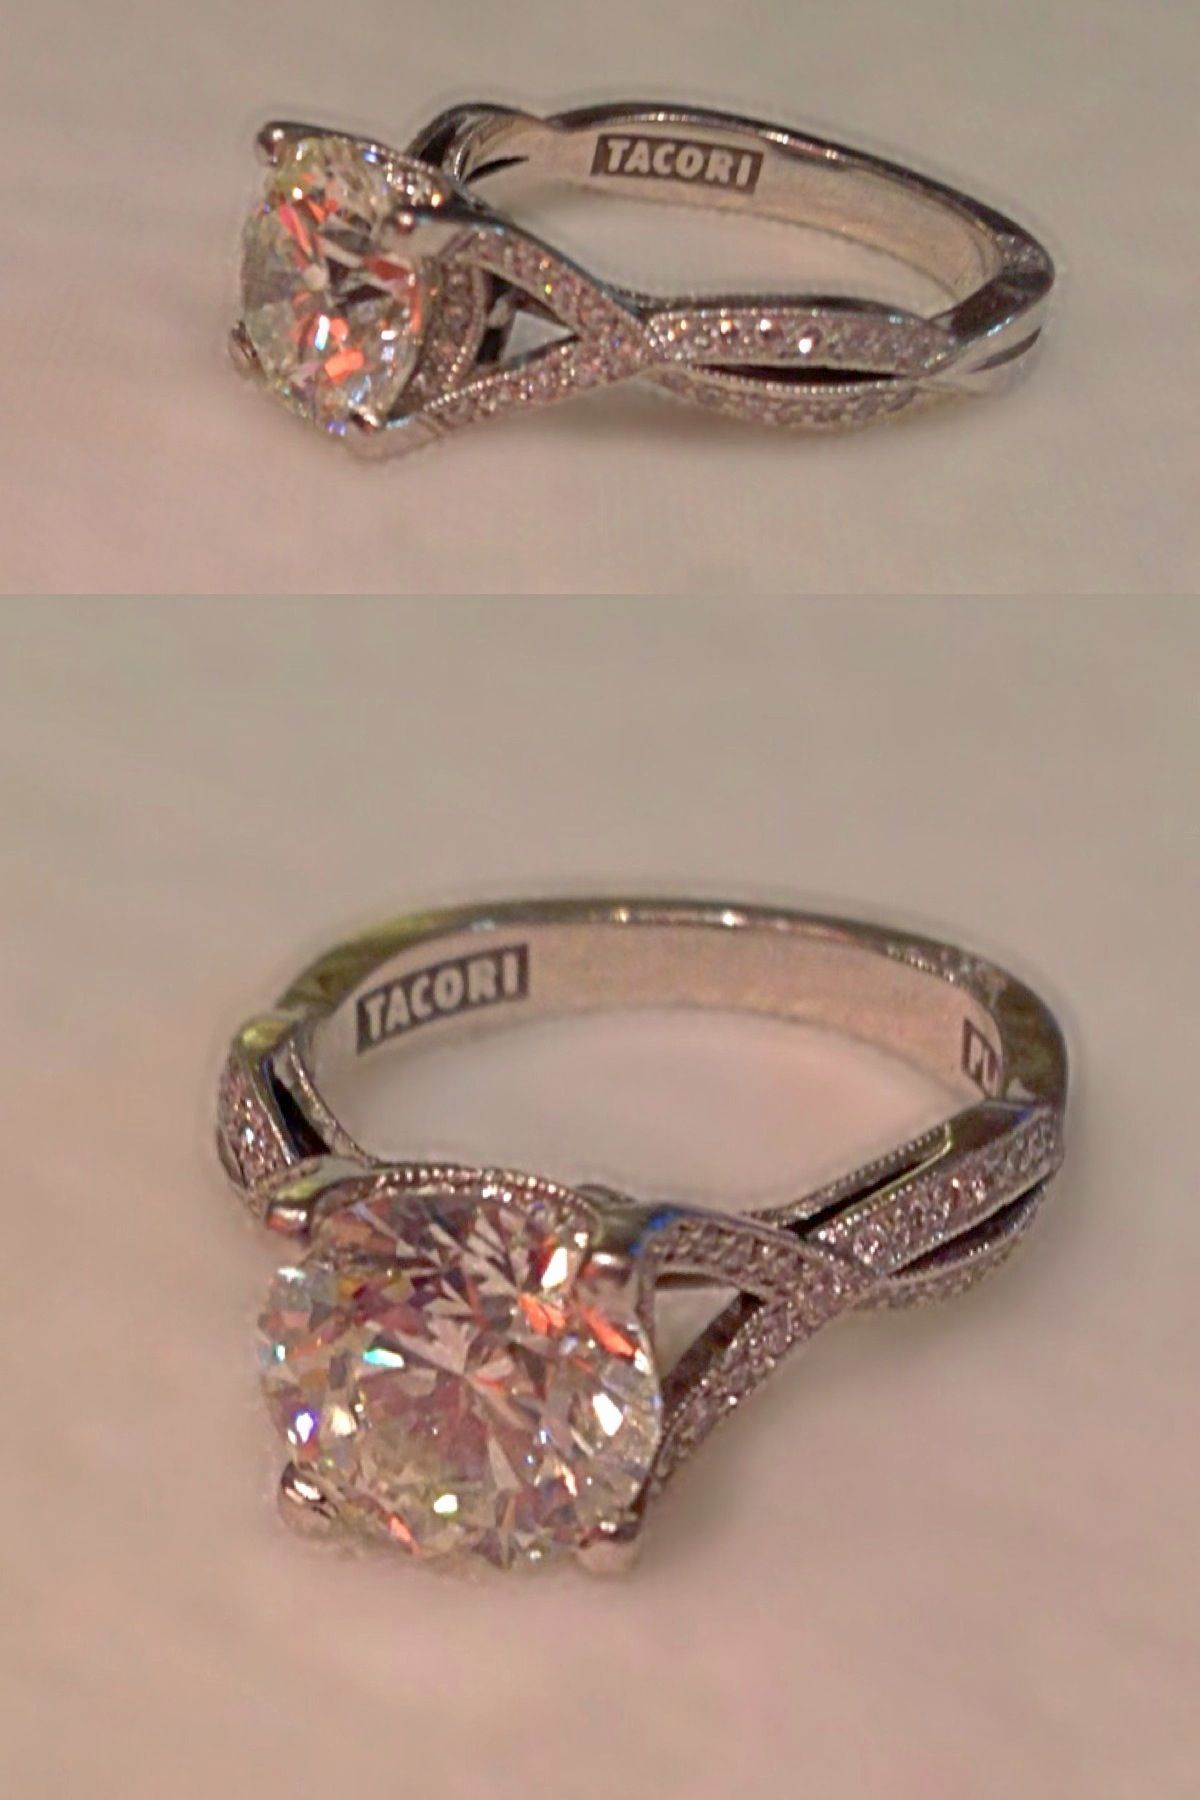 My amazing engagement ring Tacori style 2565 platinum setting